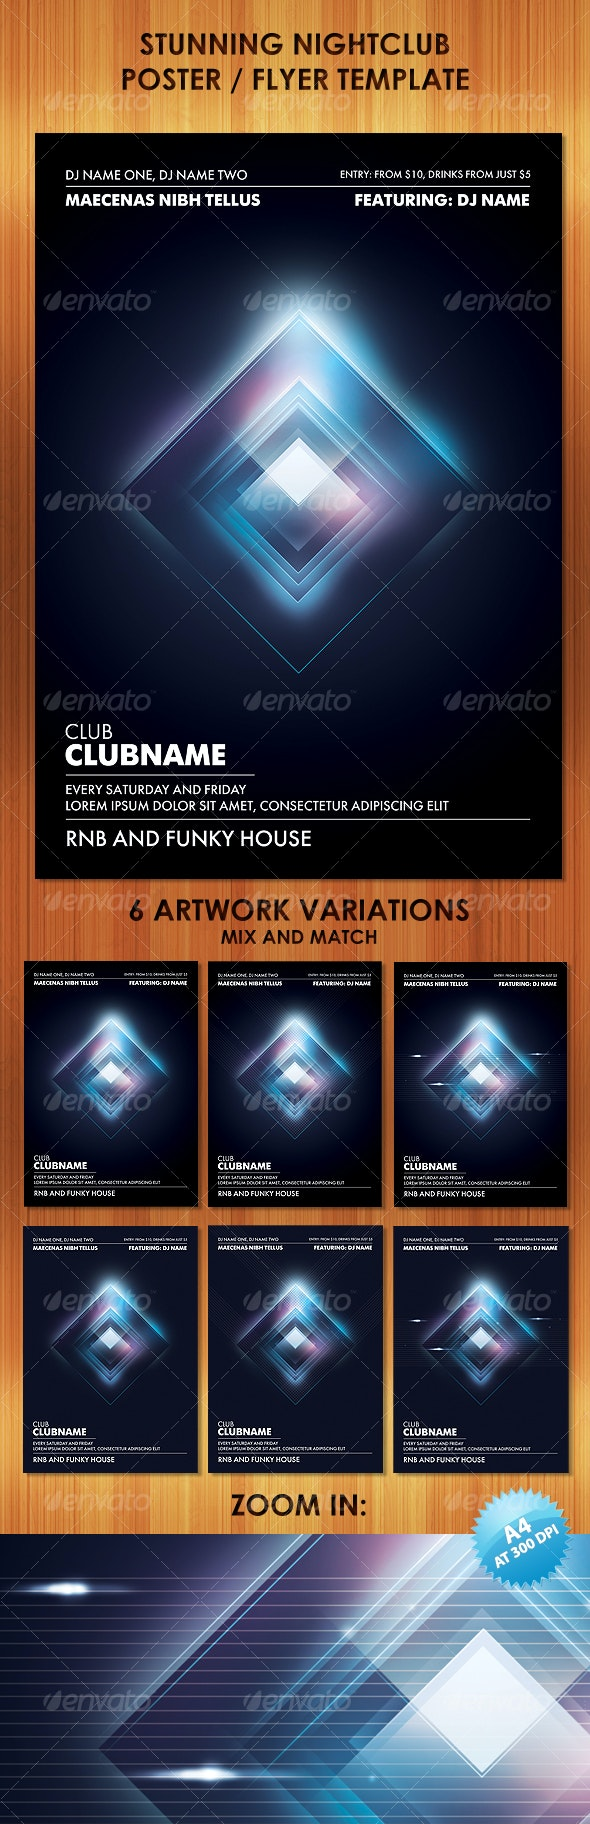 Stunning Nightclub Poster Flyer Template - Clubs & Parties Events